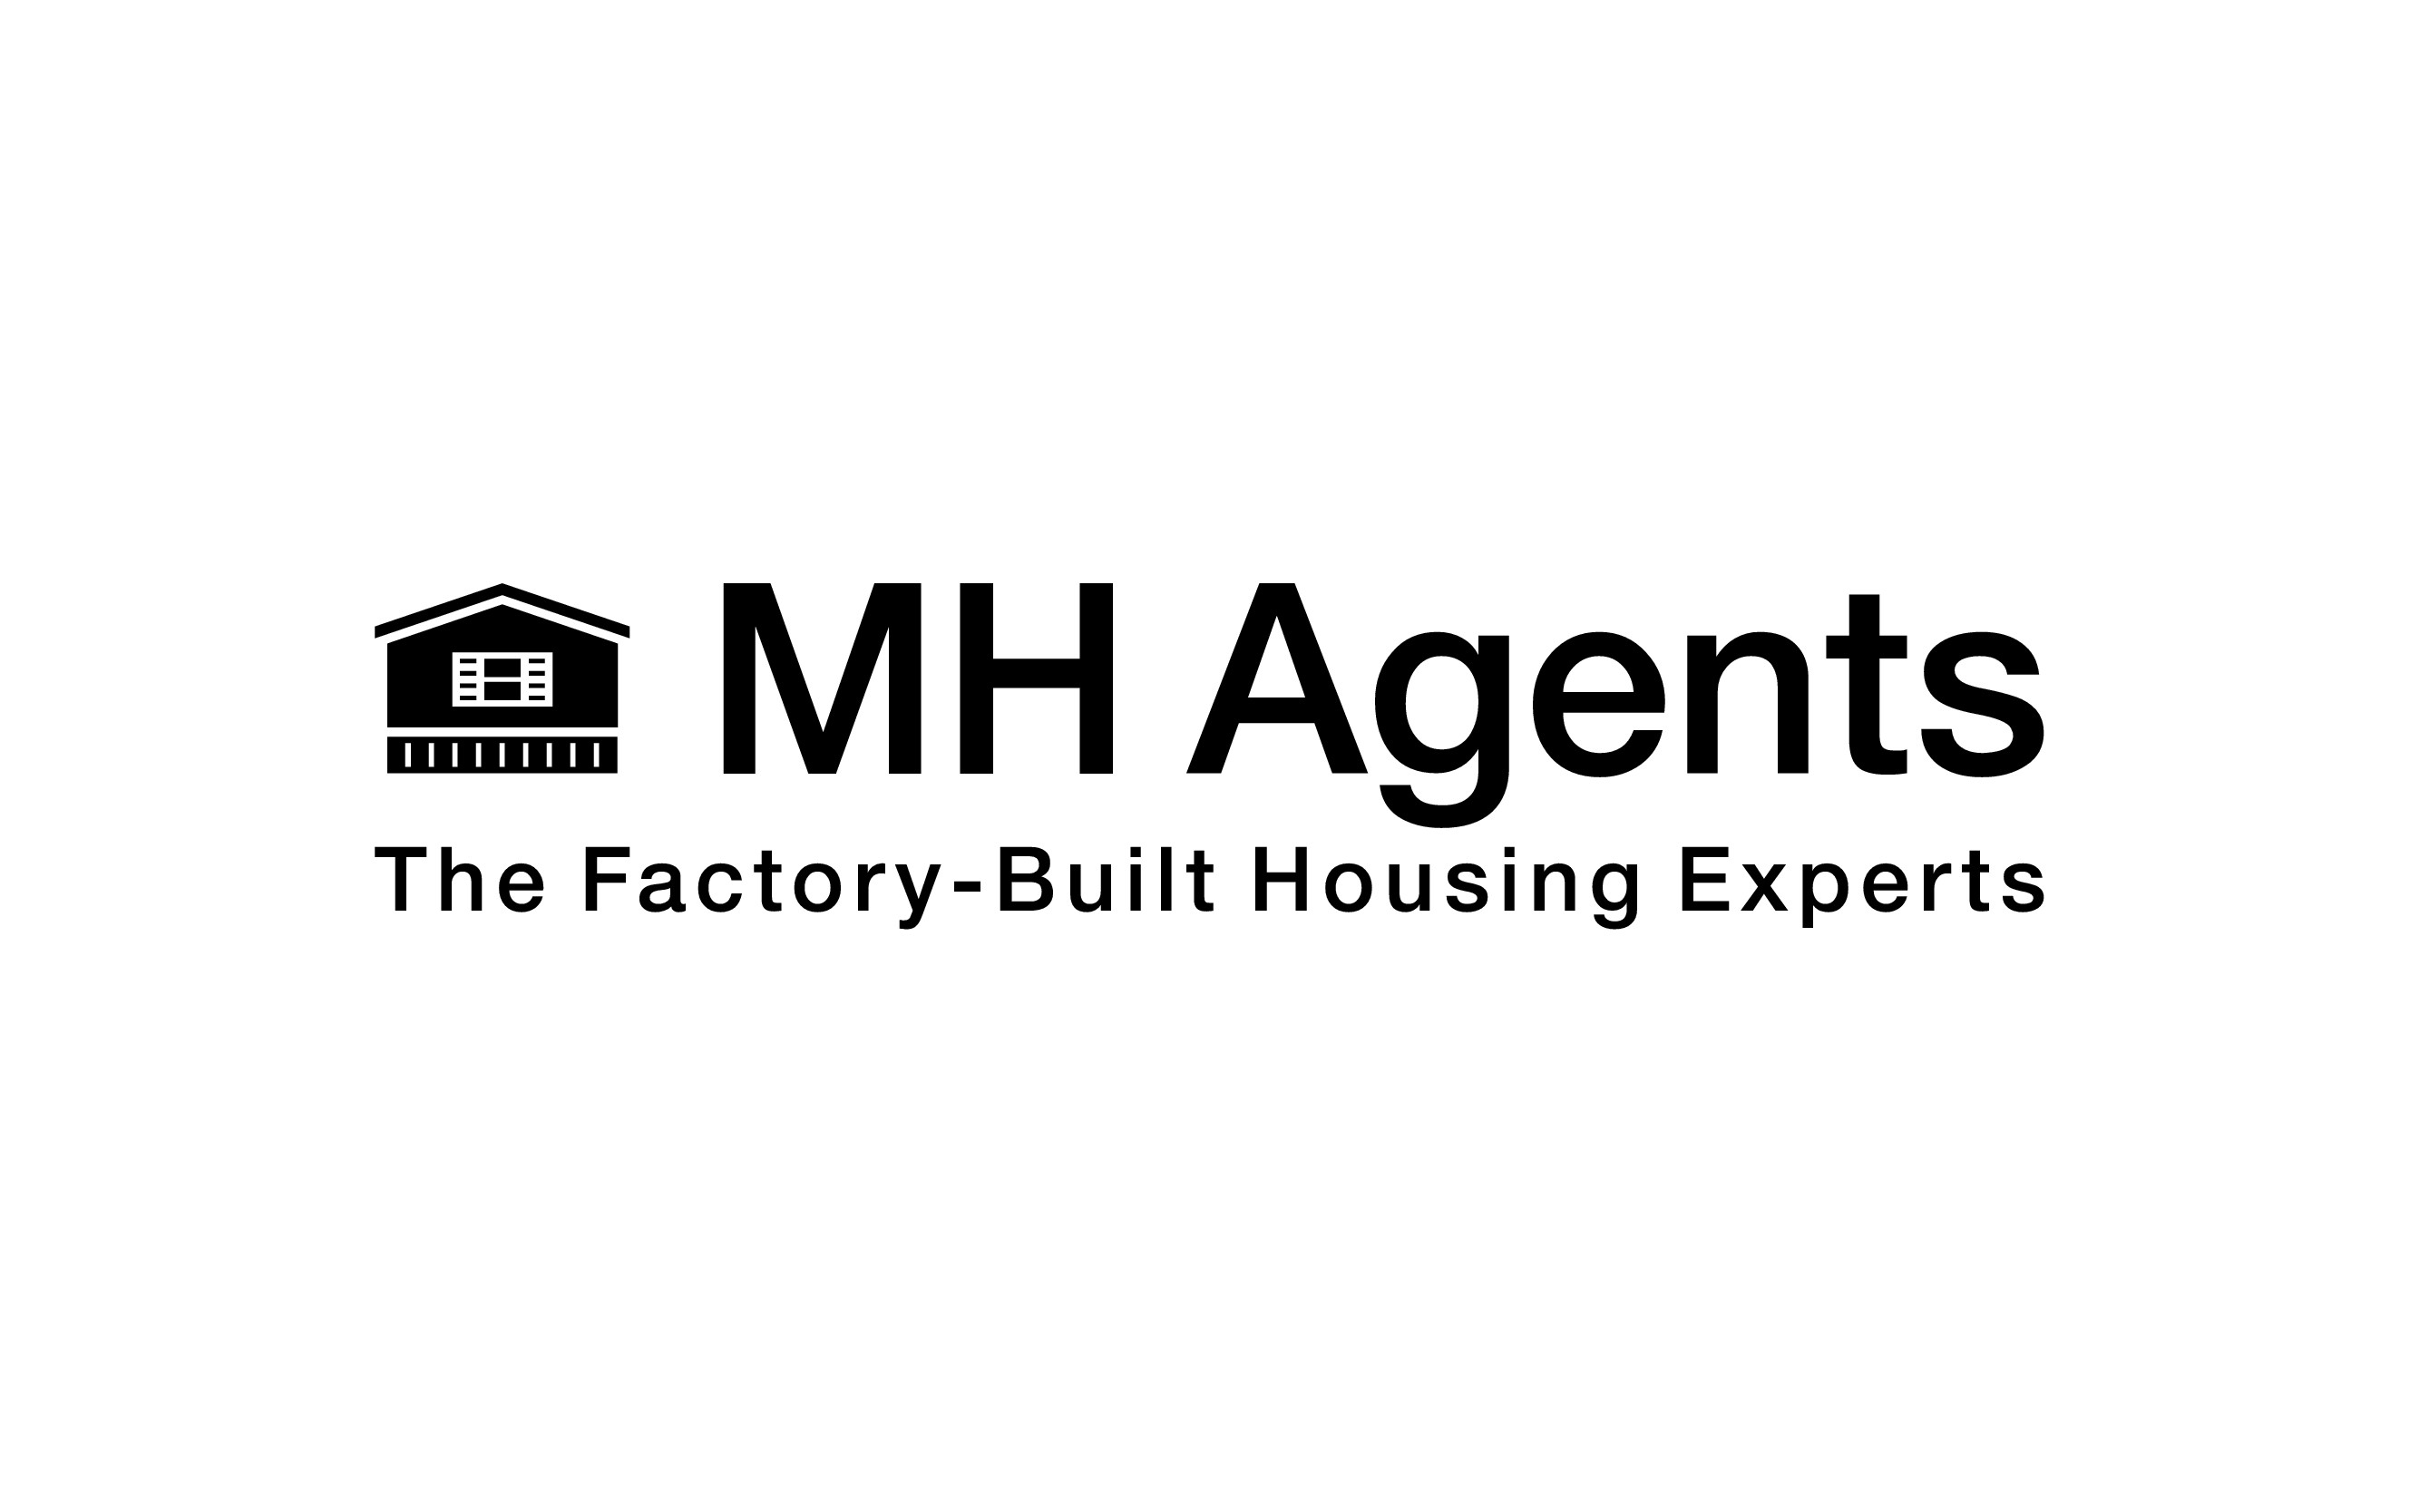 Create a capturing brand for MH Agents